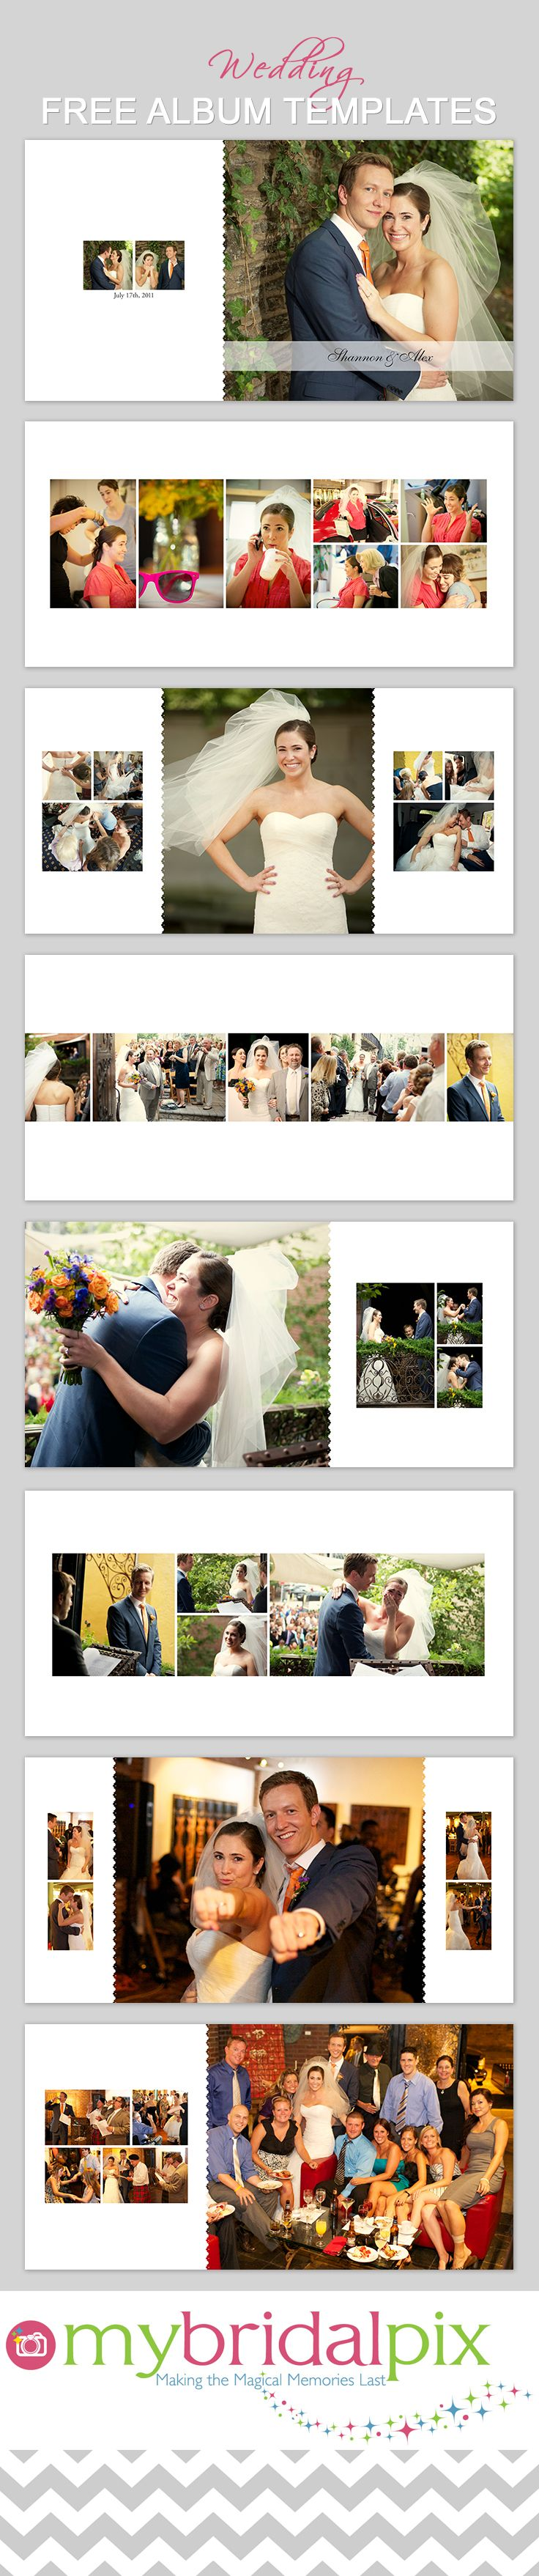 FInd all your needs for a DIY #wedding #album at www.mybridalpix.com. Why pay a…